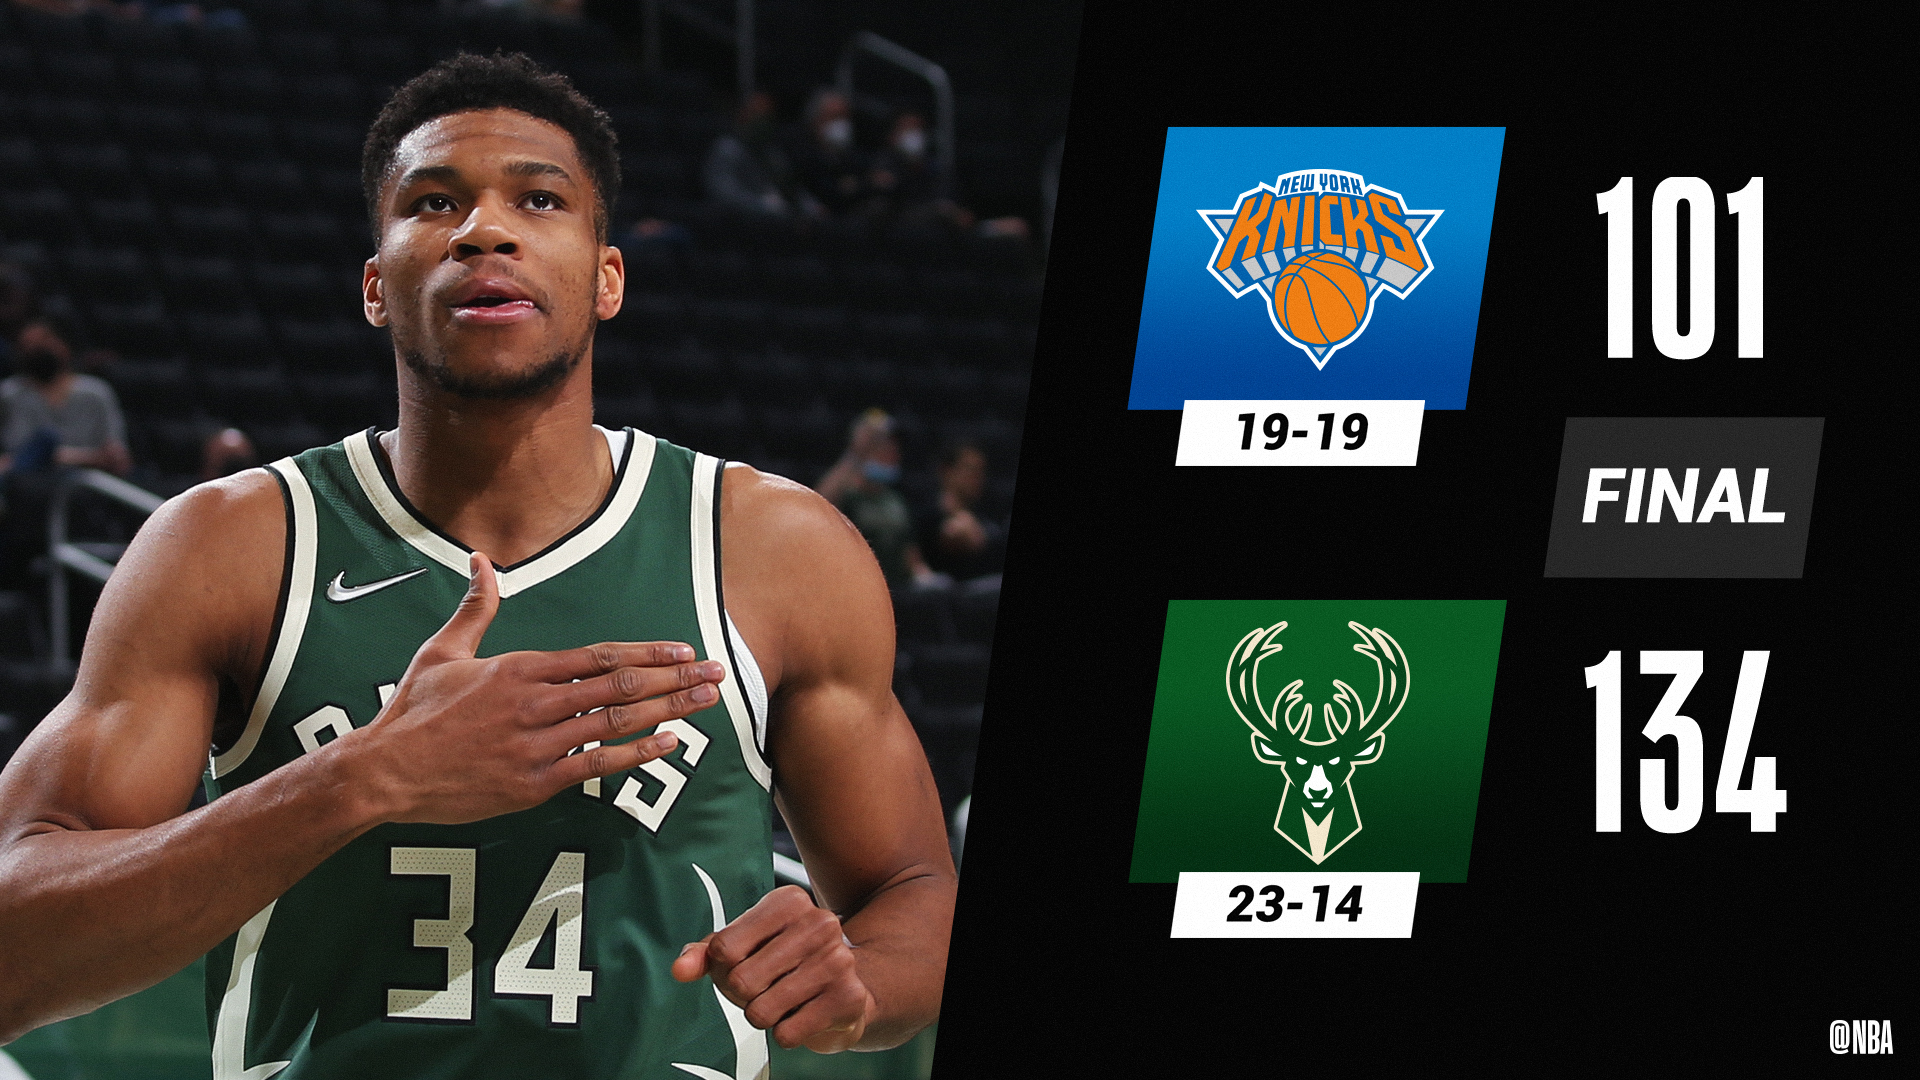 Giannis Antetokounmpo anota triplo-duplo, e Milwaukee Bucks atropelam New York Knicks